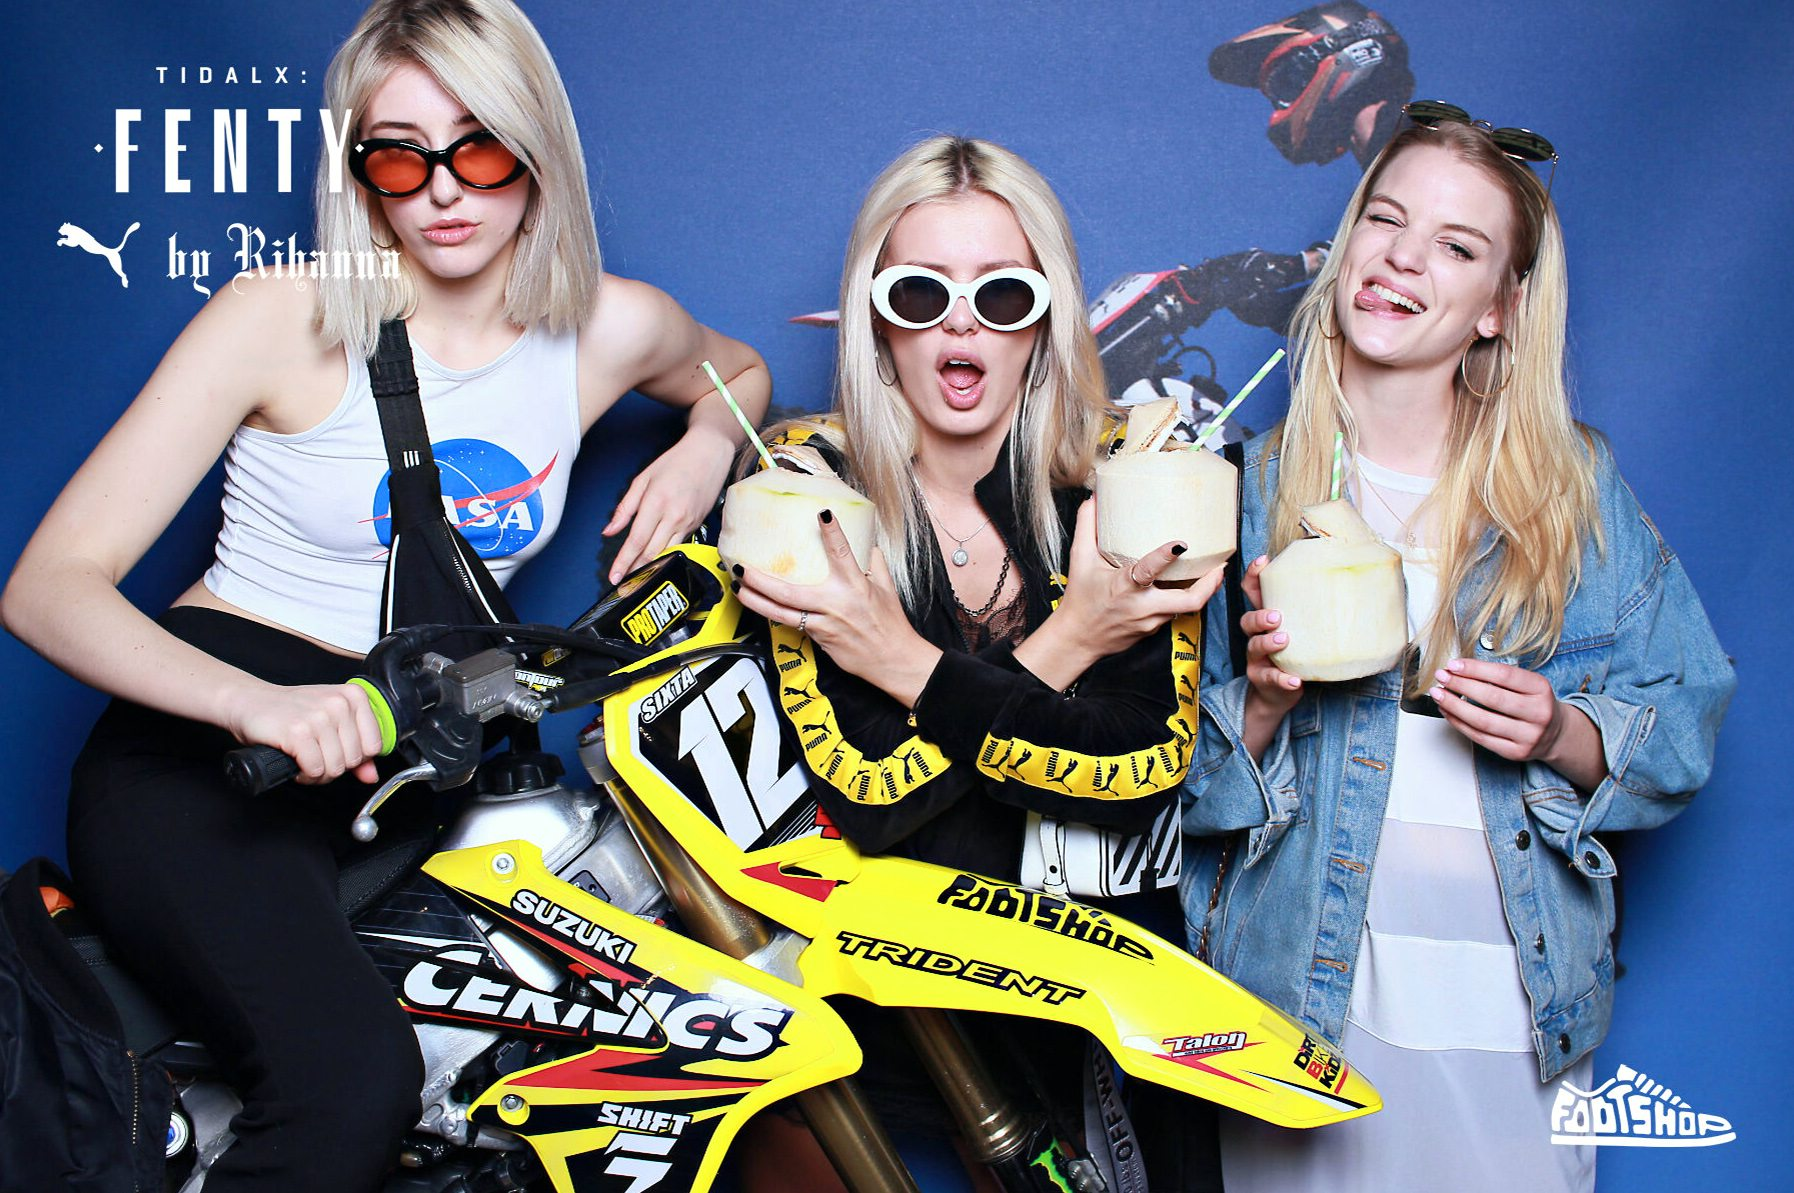 fotokoutek-puma-fenty-motocross-x-surf-party-18-4-2018-410018